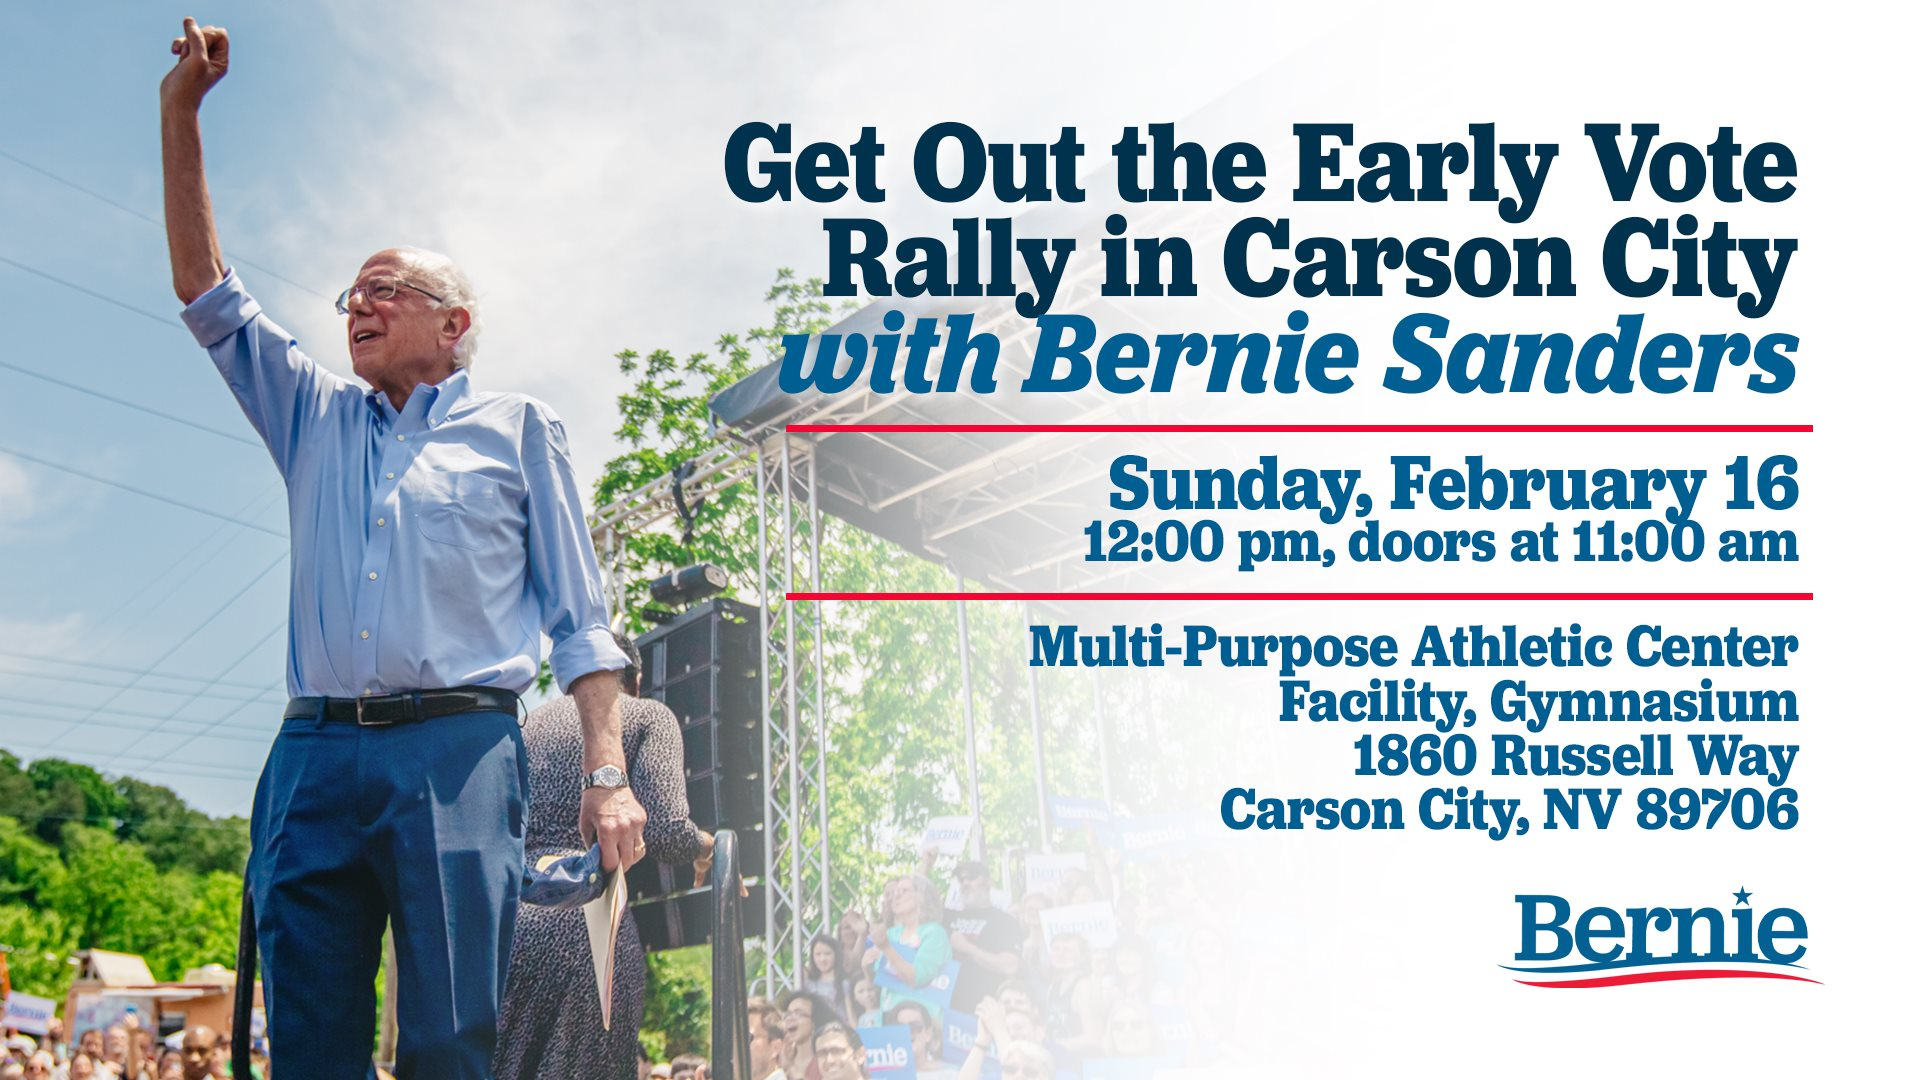 Carson City Get Out the Early Vote Rally with Bernie Sanders and Mayor Bill de Blasio.  Sunday, Feb 16, 2020. 12:00pm–2:00pm PST. Multi-Purpose Athletic Center Facility, Gymnasium 1860 Russell Way Carson City, NV 89706 Doors open at 11:00 a.m. and the event starts at 12:00 p.m.